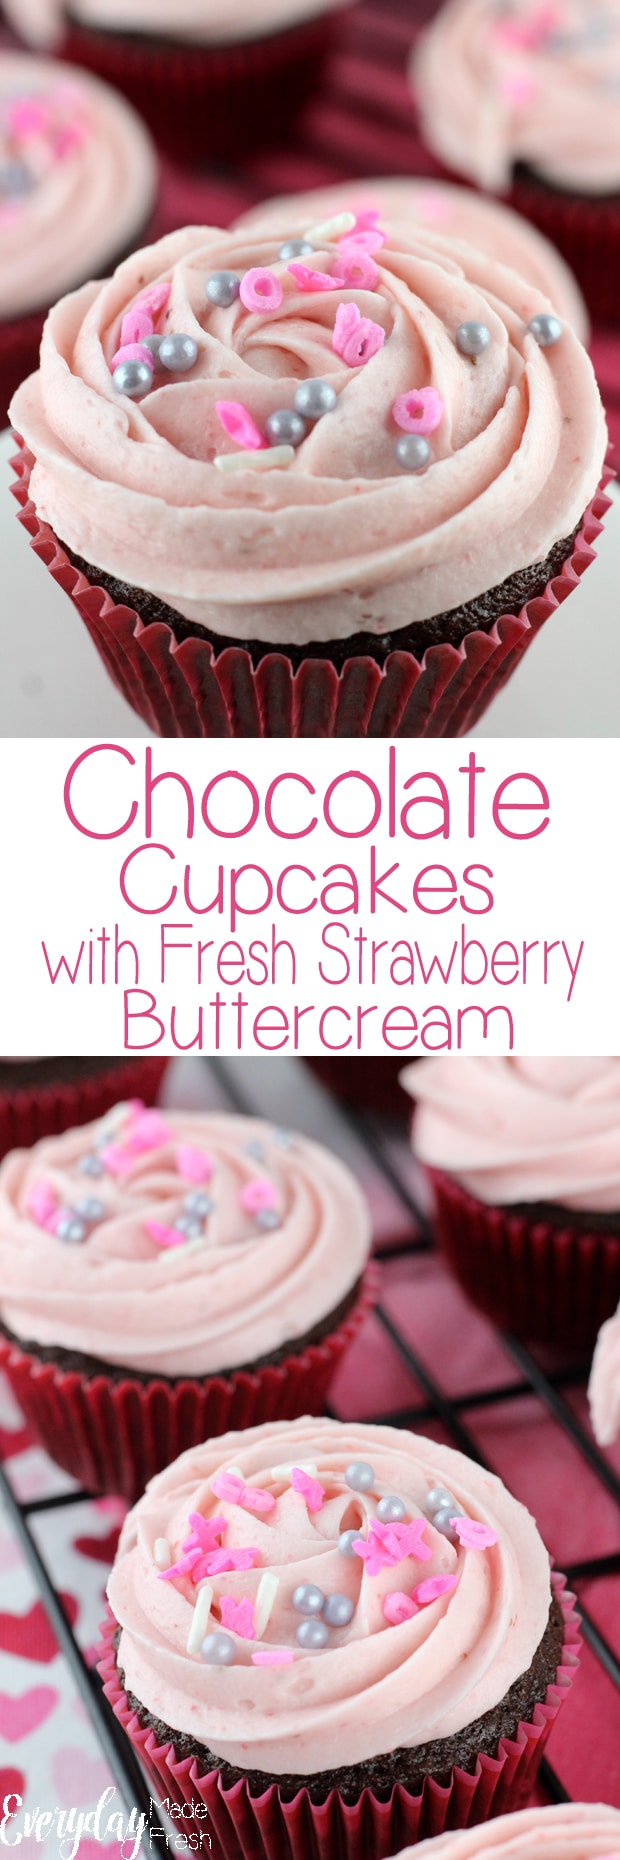 Chocolate Cupcakes with Fresh Strawberry Buttercream are made with the most moist, rich and flavorful chocolate base; topped with strawberry buttercream that's made with fresh strawberry puree.  | EverydayMadeFresh.com